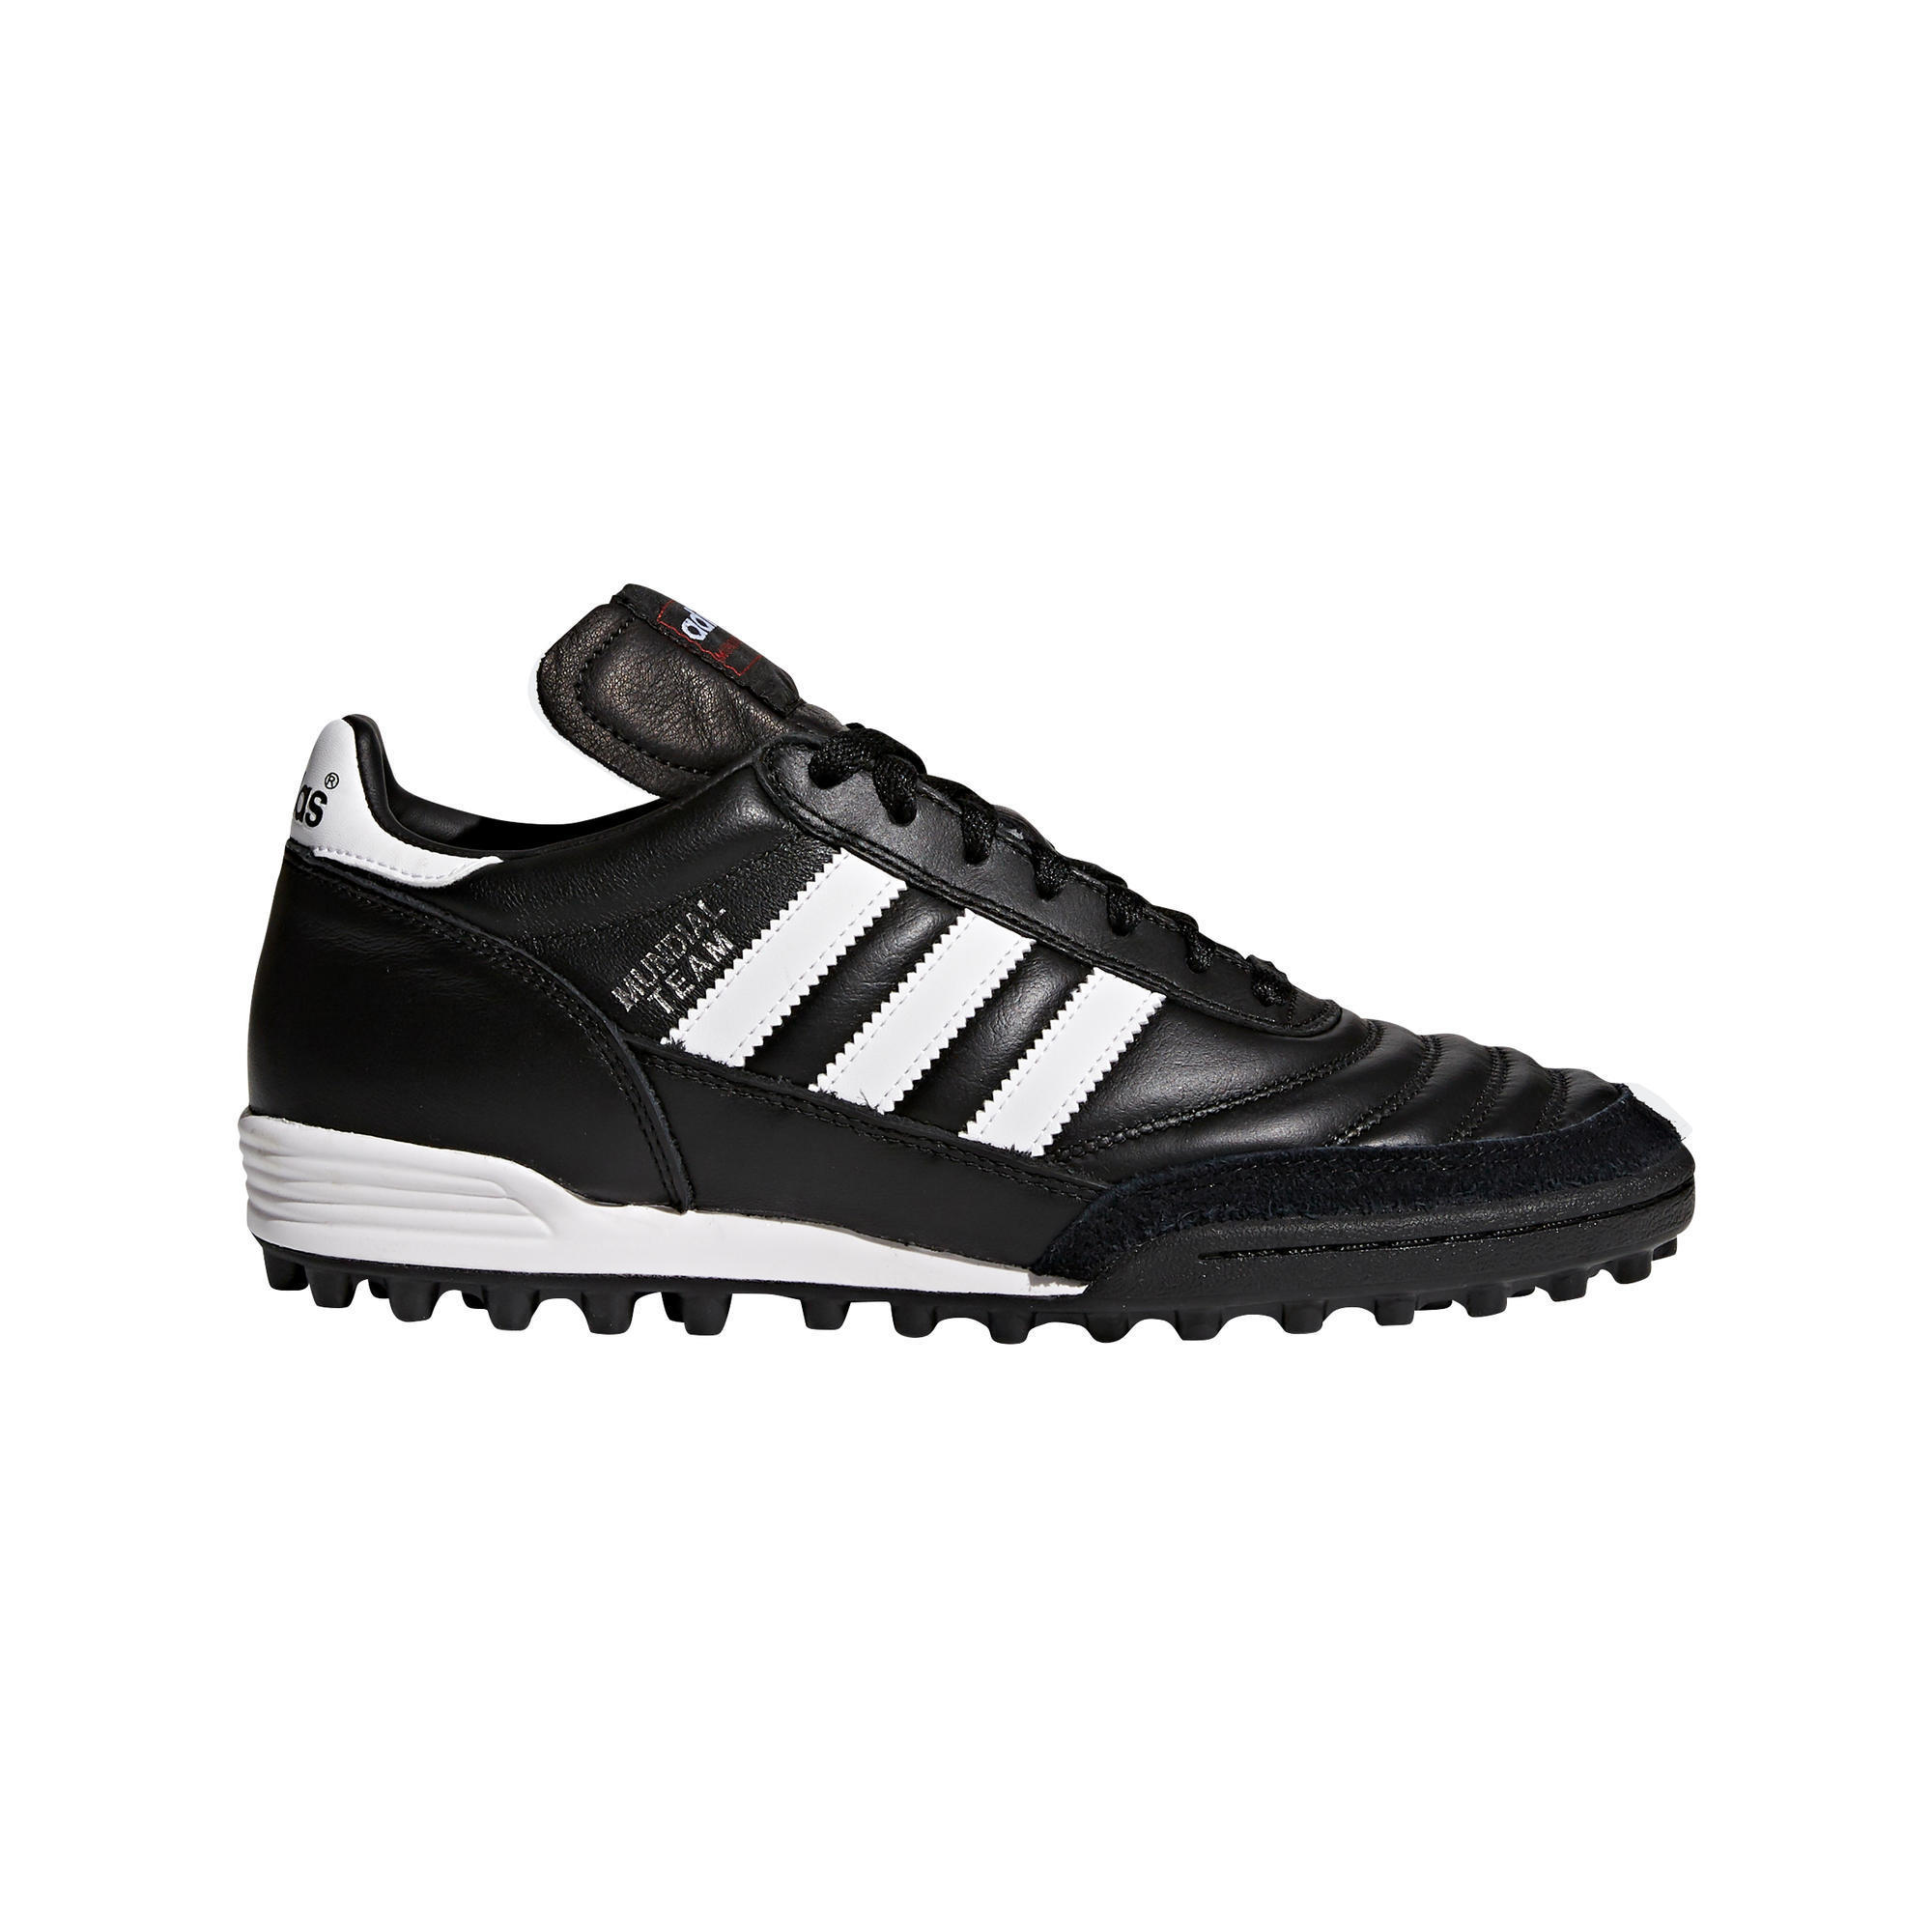 stabile football chaussure adidas